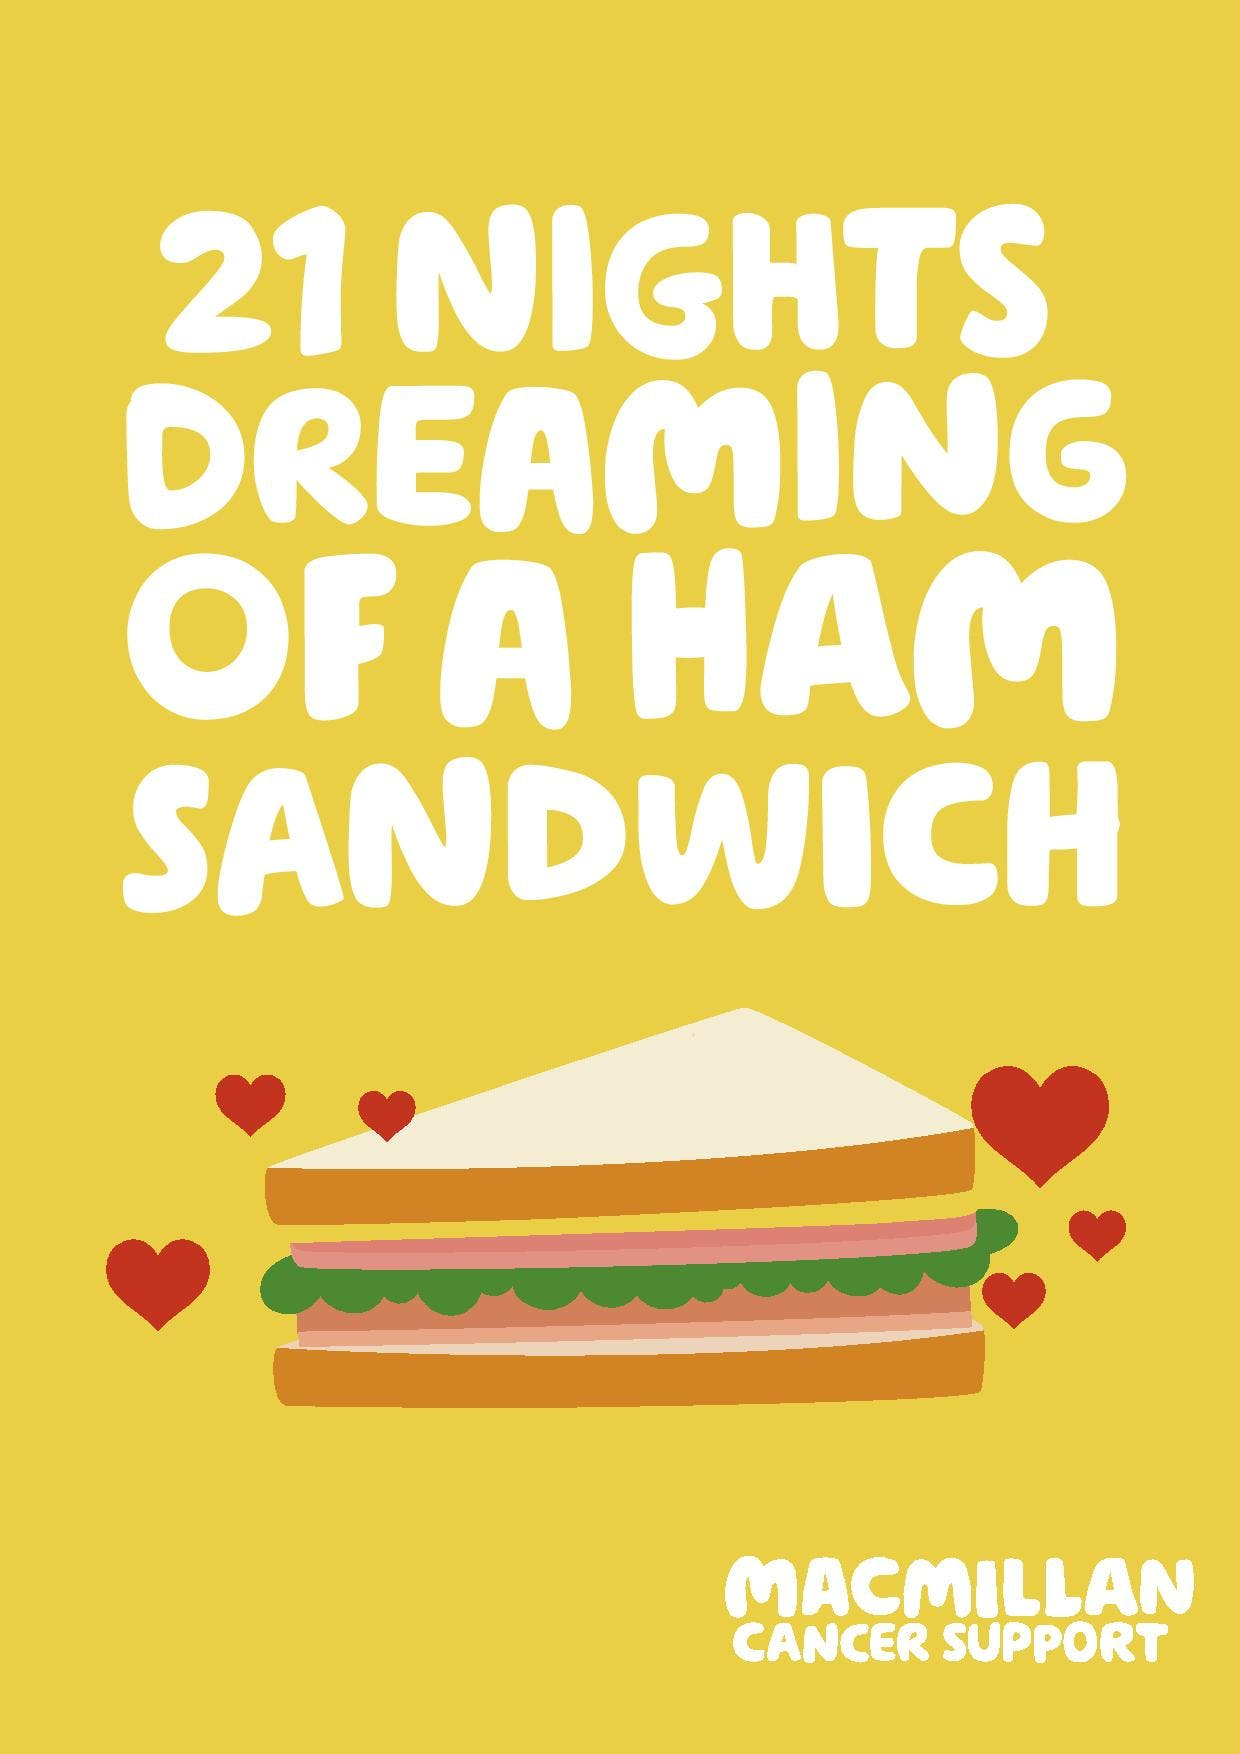 Yello background text: 21 nights dreaming of a ham sandwich